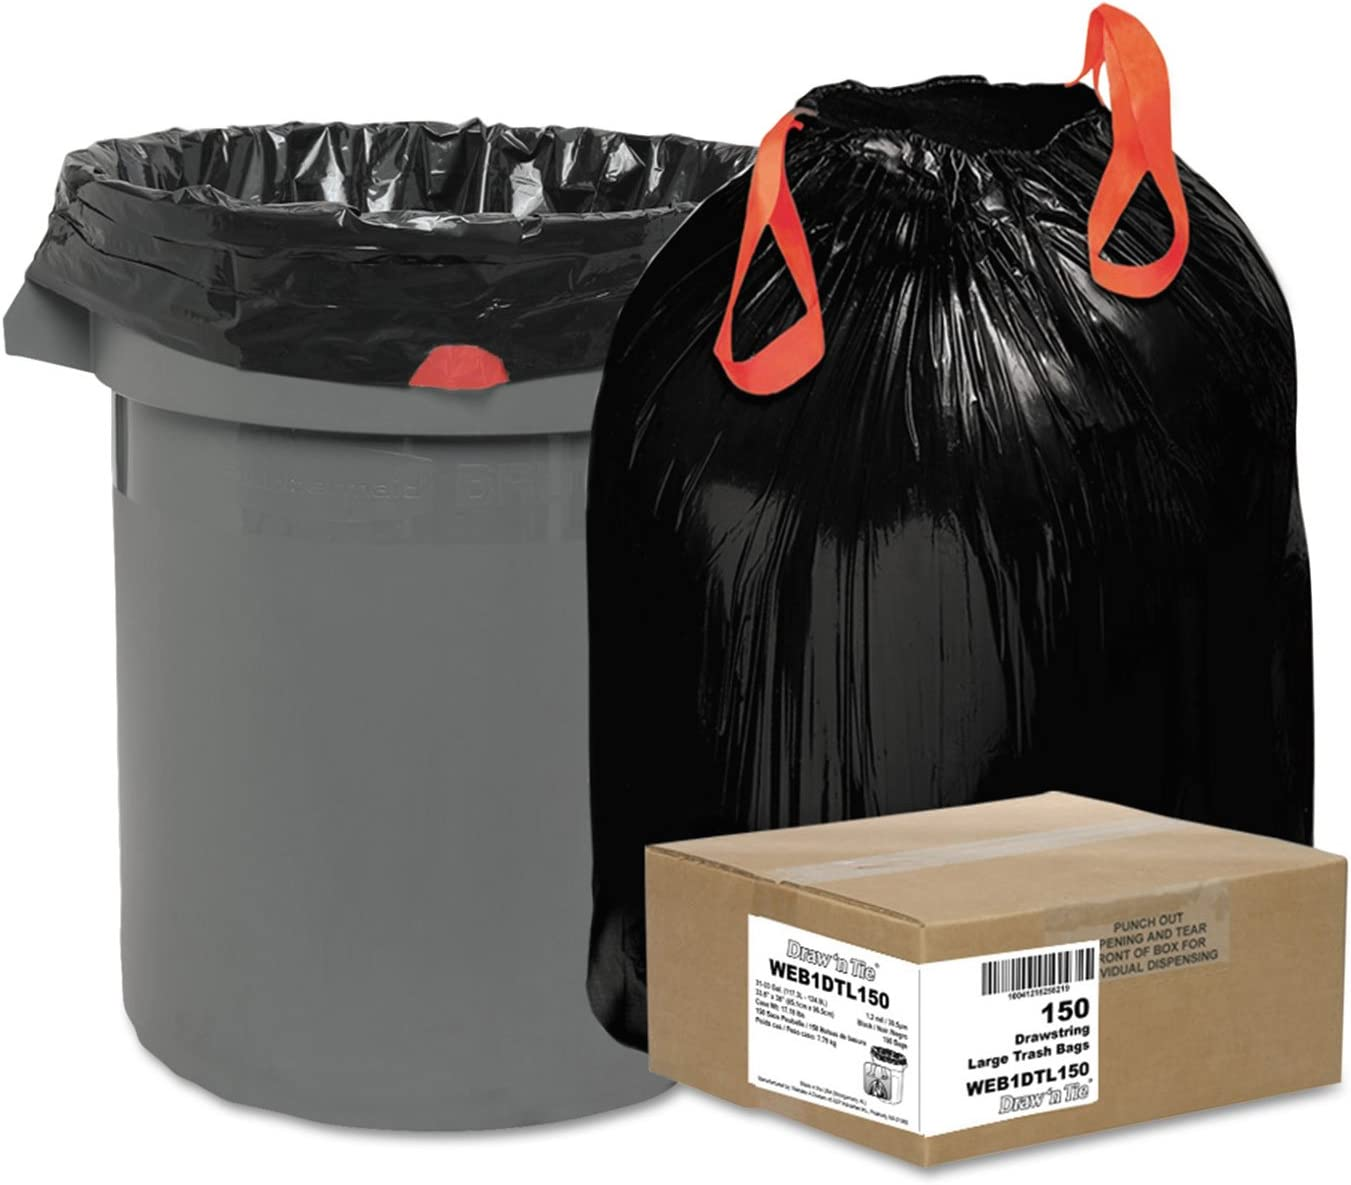 Heavy-Duty Bags 33gal Complete Free Ranking TOP5 Shipping 1.2 mil 38 2 x Black 150 33-1 Box